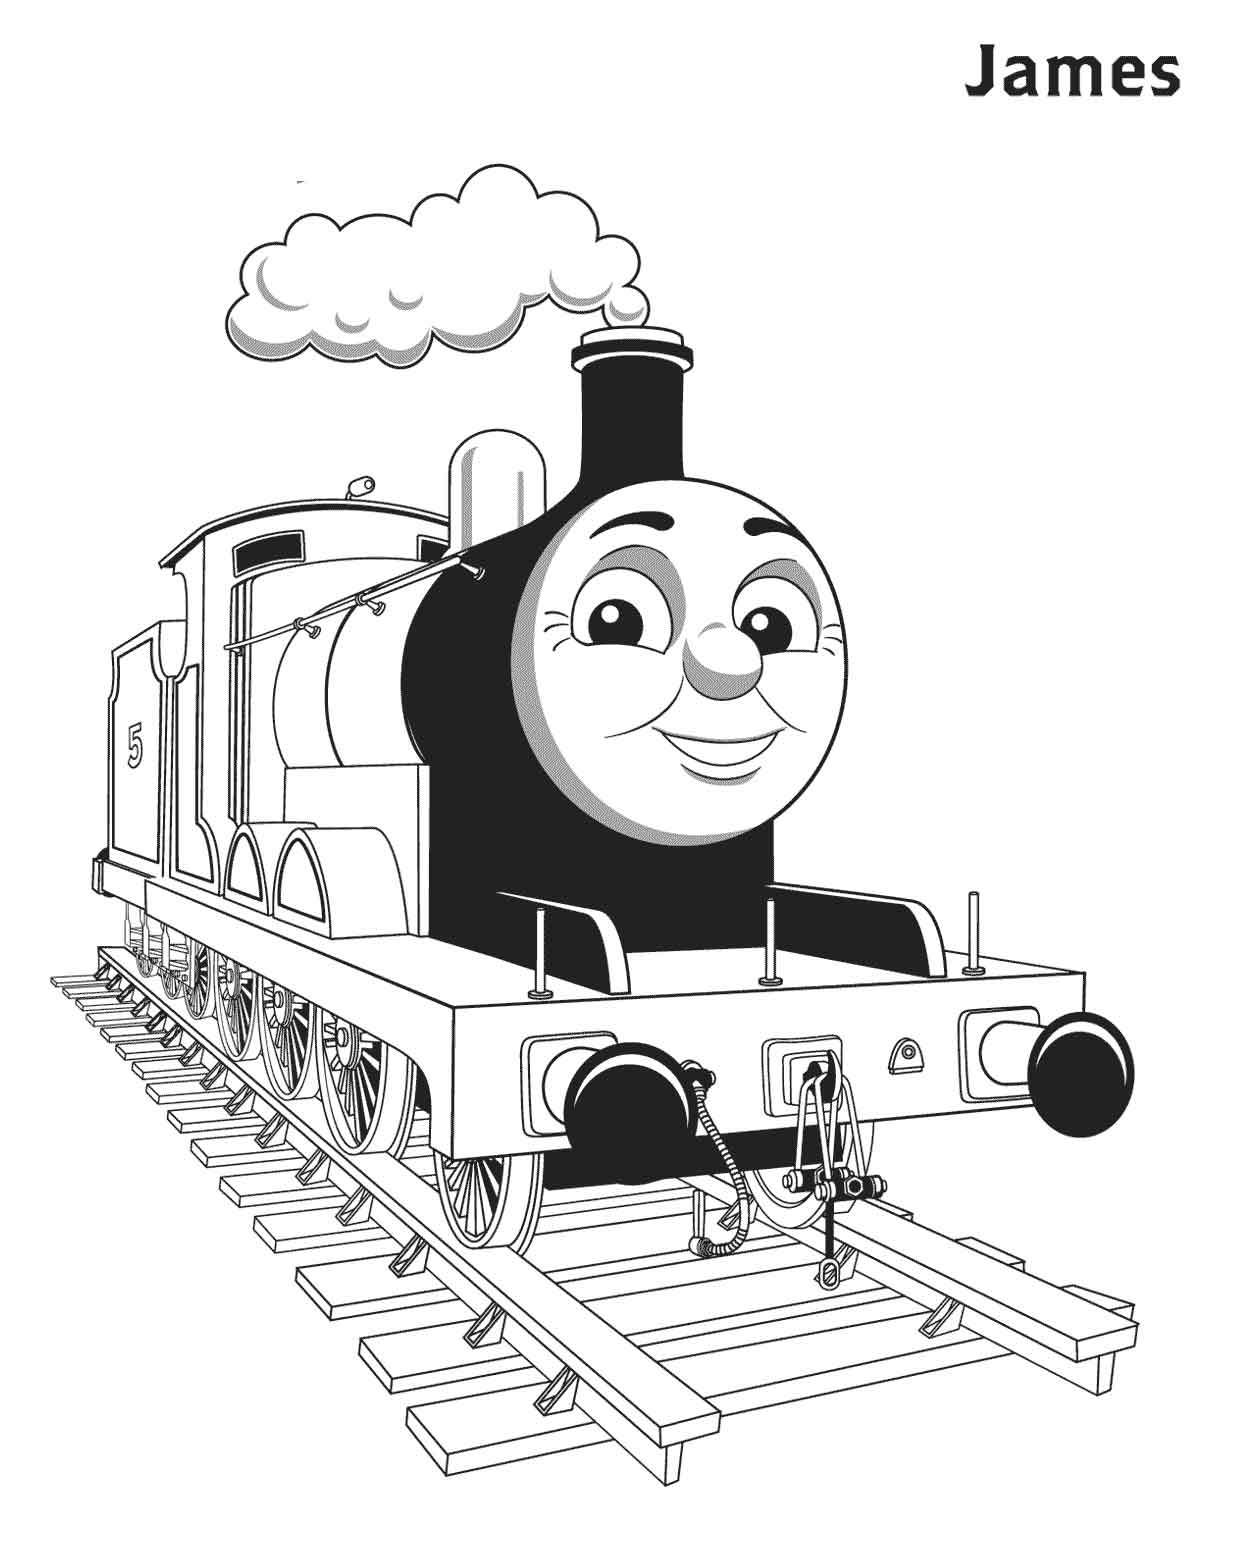 thomas and friends coloring pages thomas and friends car coloring for kids adventure time pages thomas friends coloring and